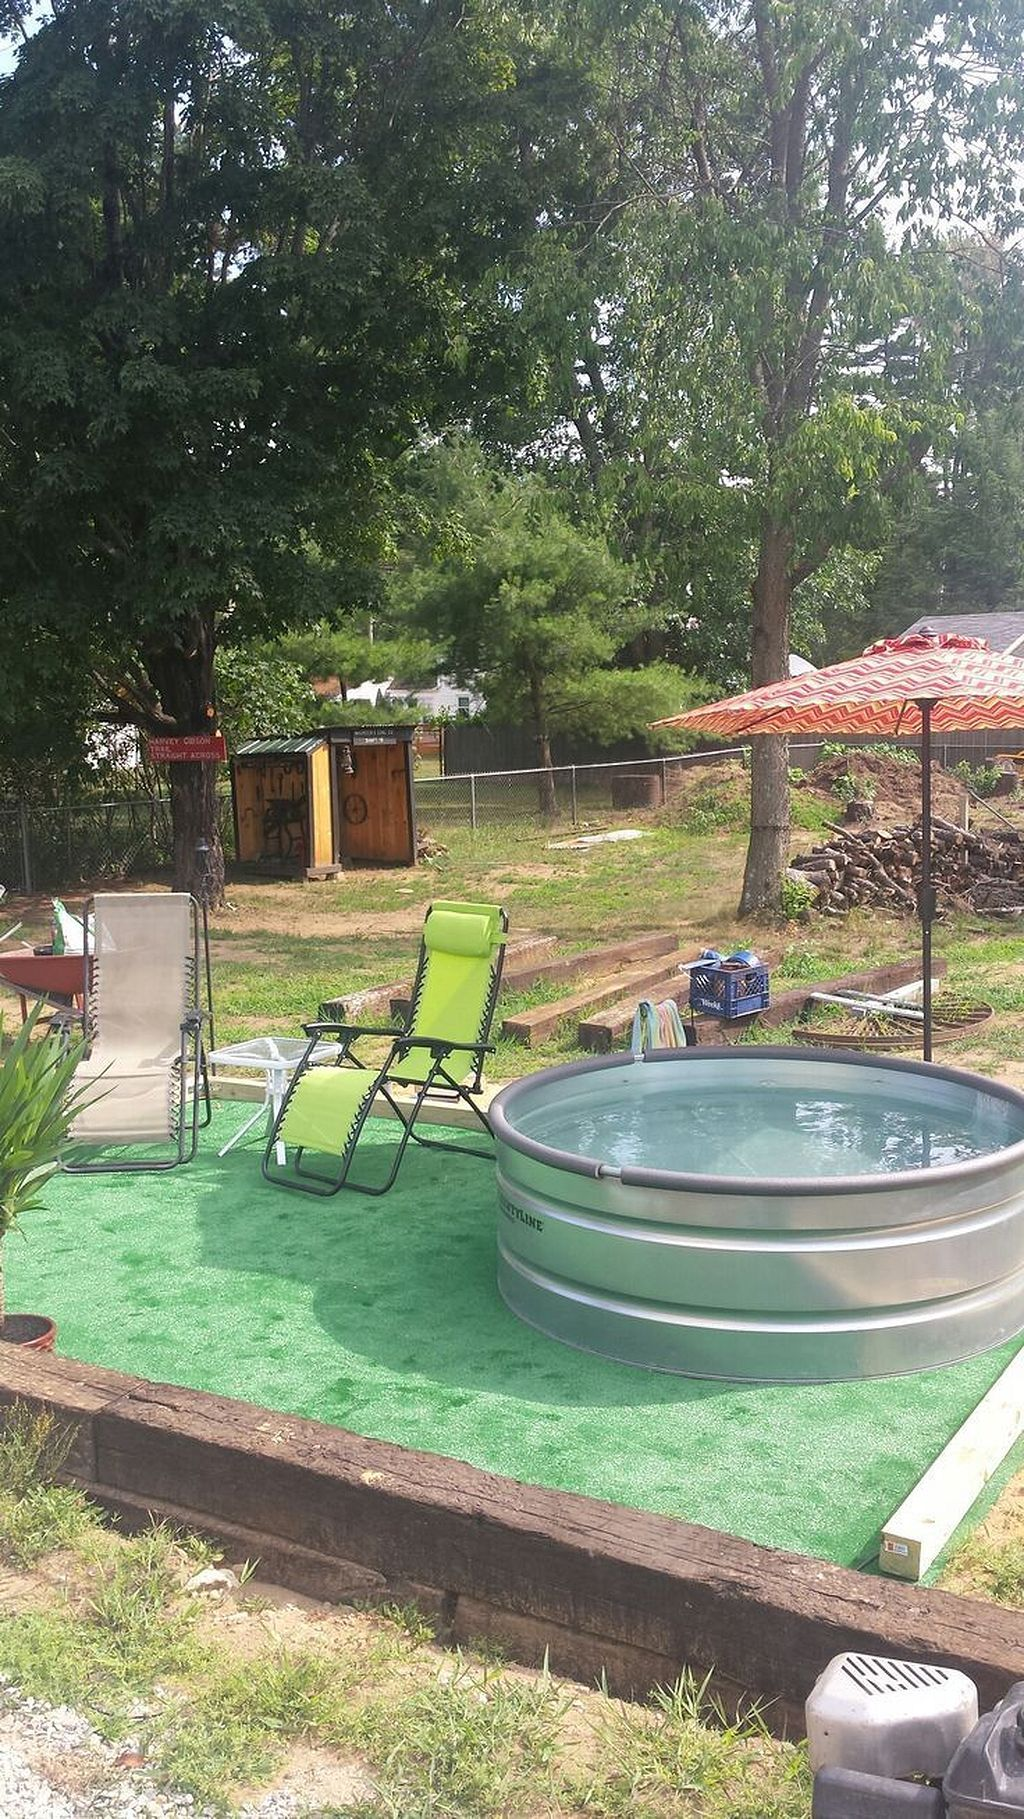 Awesome 20 diy galvanized stock tank pool to beat the